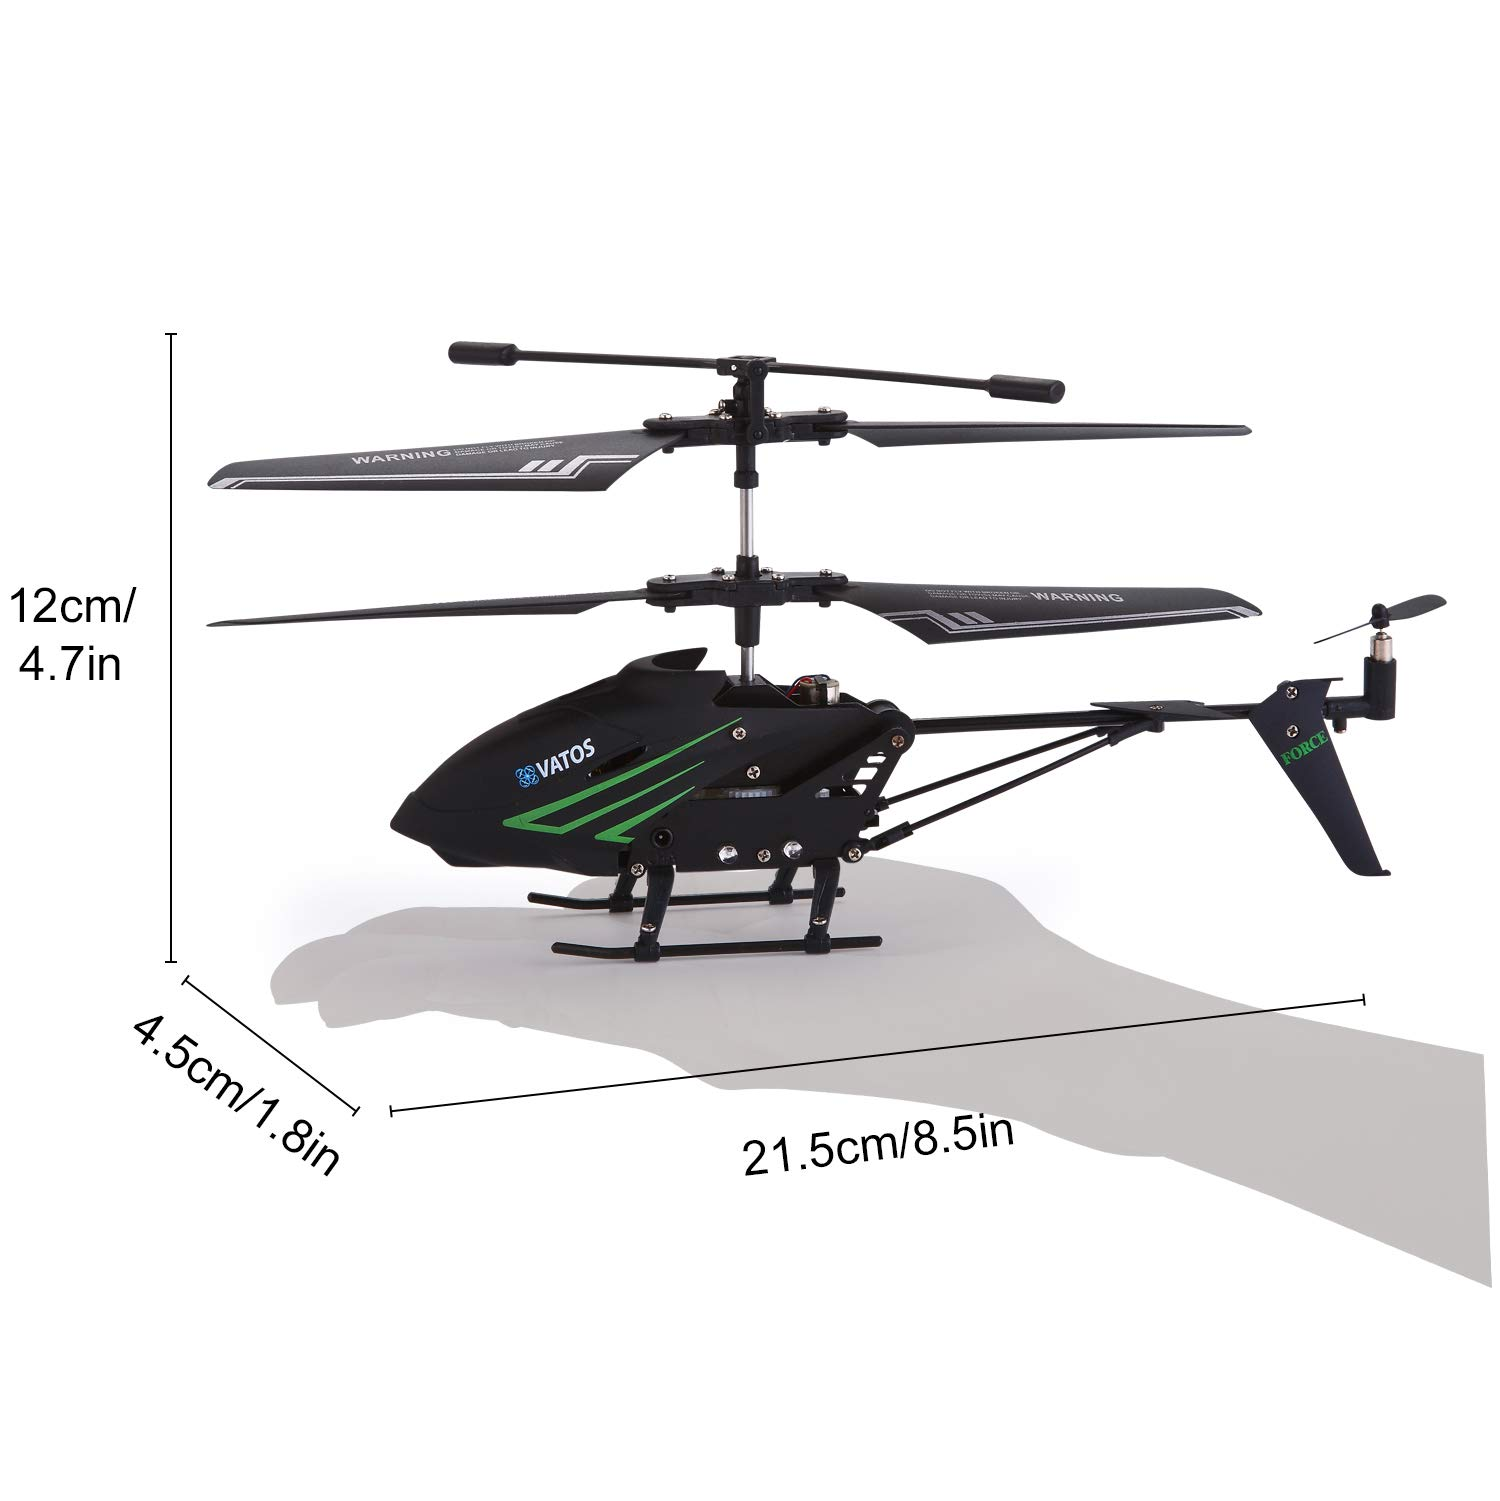 RC Helicopter, Remote Control Helicopter with Gyro and LED Light 3.5HZ Channel Alloy Mini Helicopter Remote Control for Kids & Adult Indoor Outdoor Micro RC Helicopter Best Helicopter Toy Gift by VATOS (Image #2)